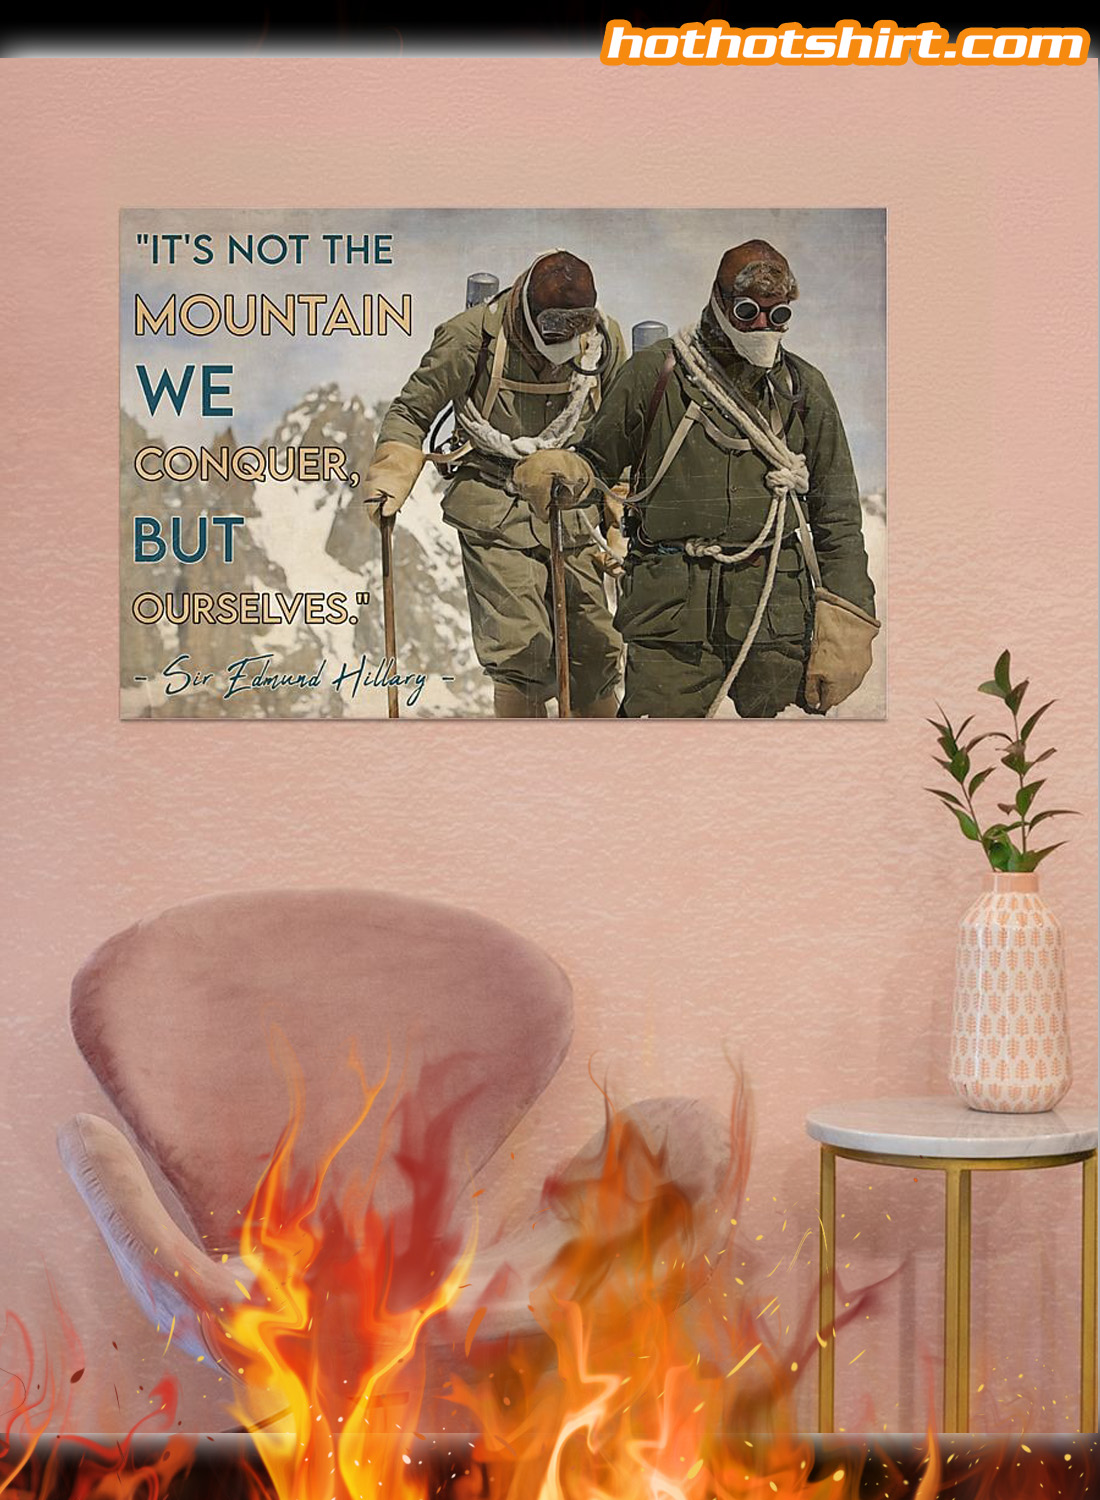 Vintage Mountaineer It's not the mountain we conquer but ourselves poster 2